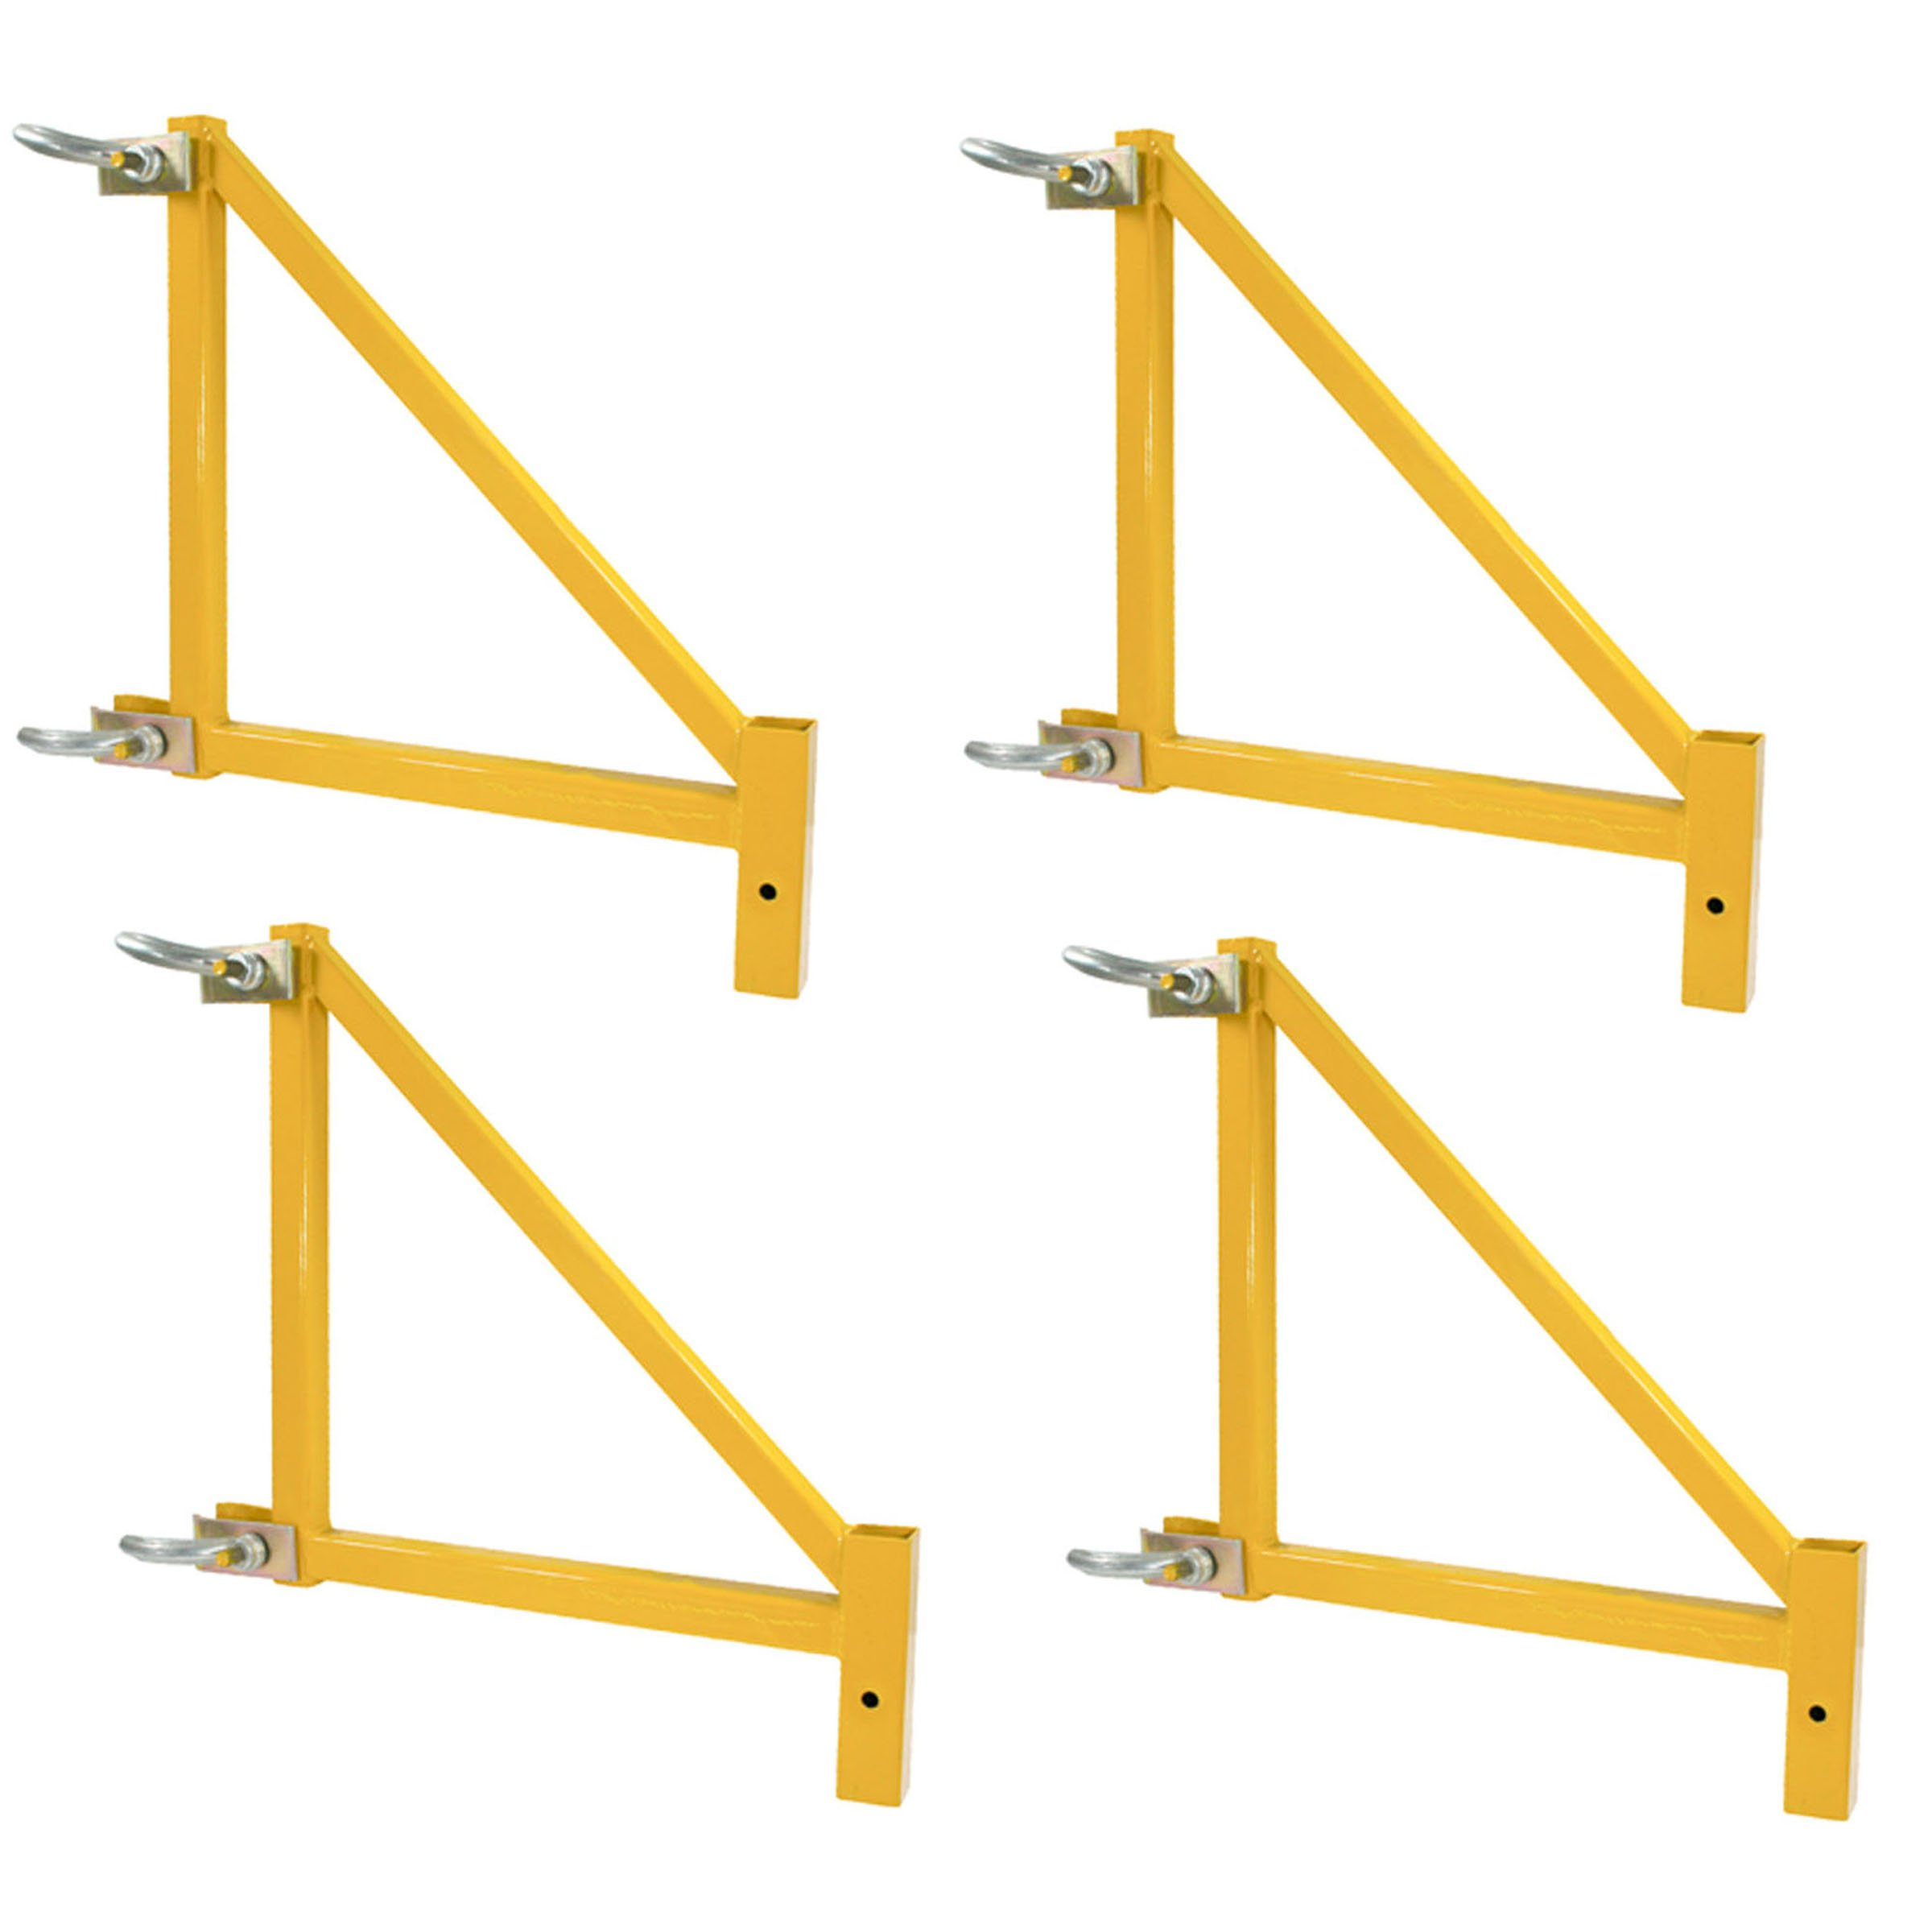 Buffalo Tools GSORSET Outrigger for GSSI Base Scaffolding Unit, 18-Inch, 4-Pack by Buffalo Tools